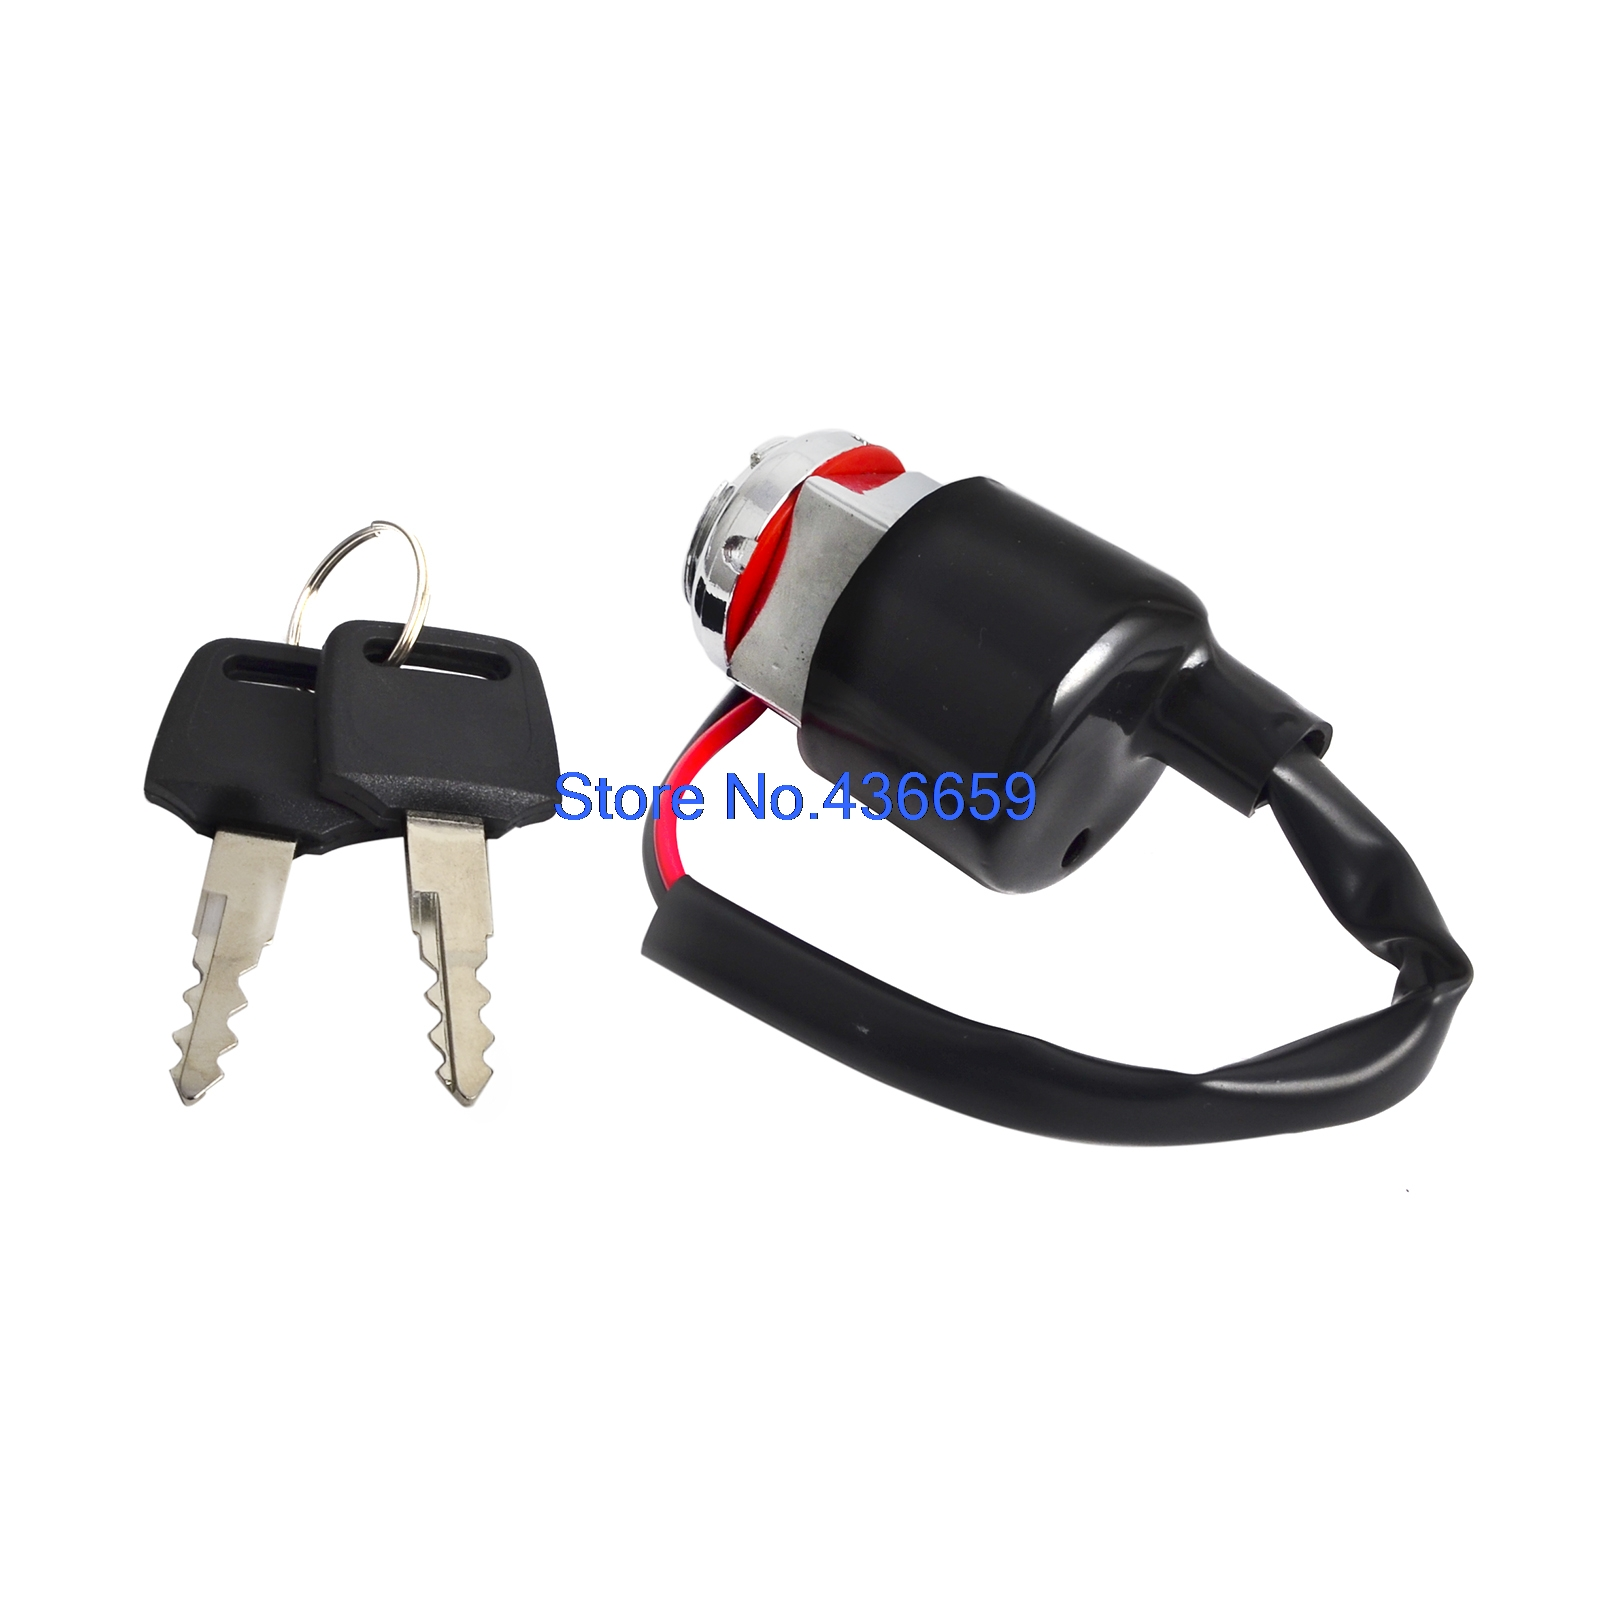 ignition switch with 2 keys 2 wire for honda cb100 super sport 100 cb125 cl70 cl90 [ 1600 x 1600 Pixel ]